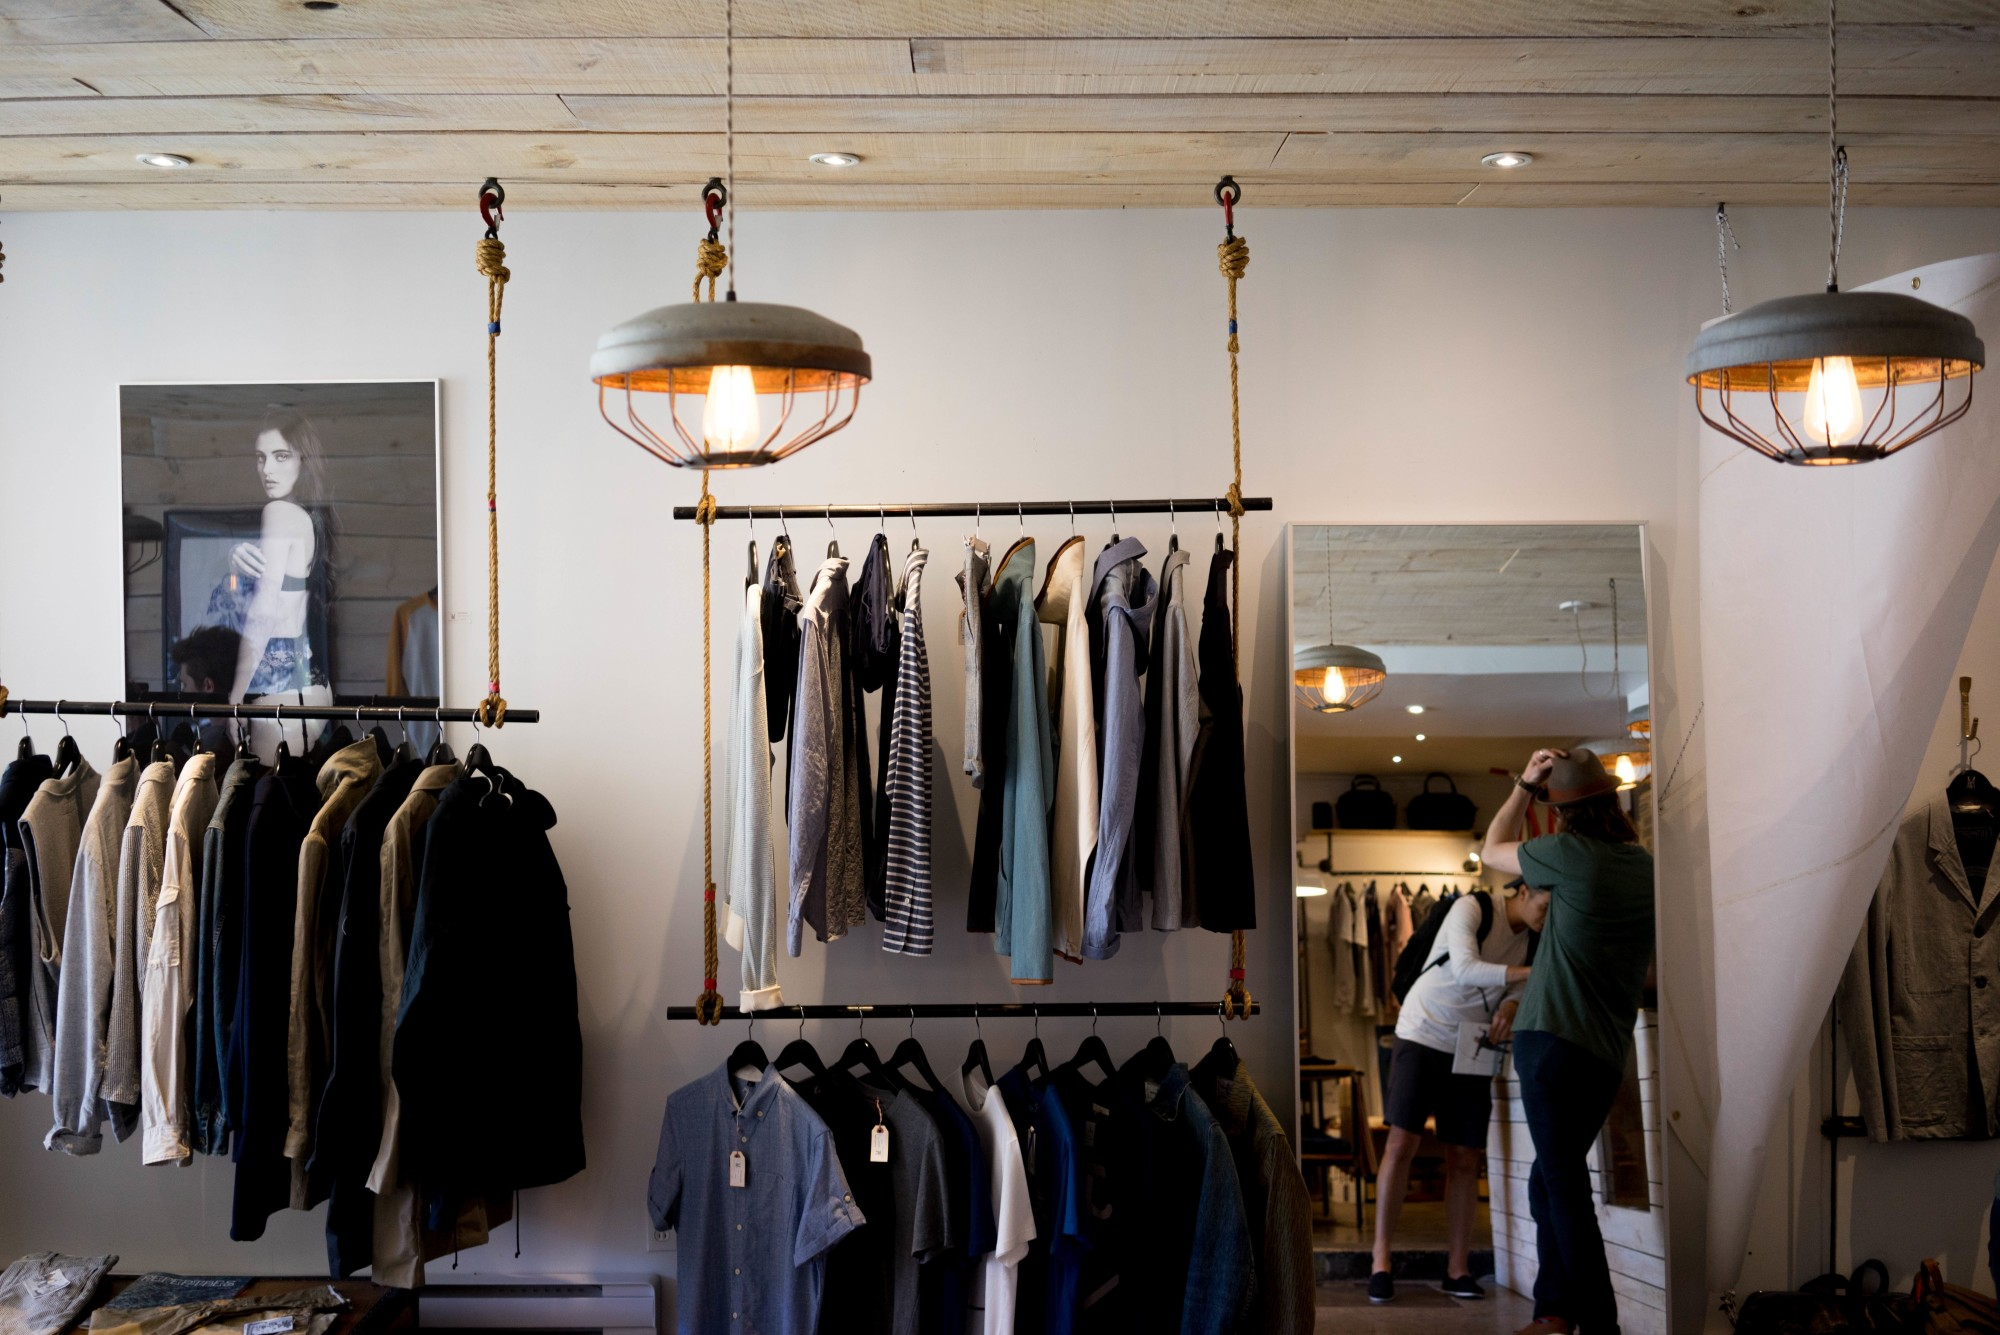 The Perfect Fit: 5 Key Tips for Finding the Boutique That's Best for You